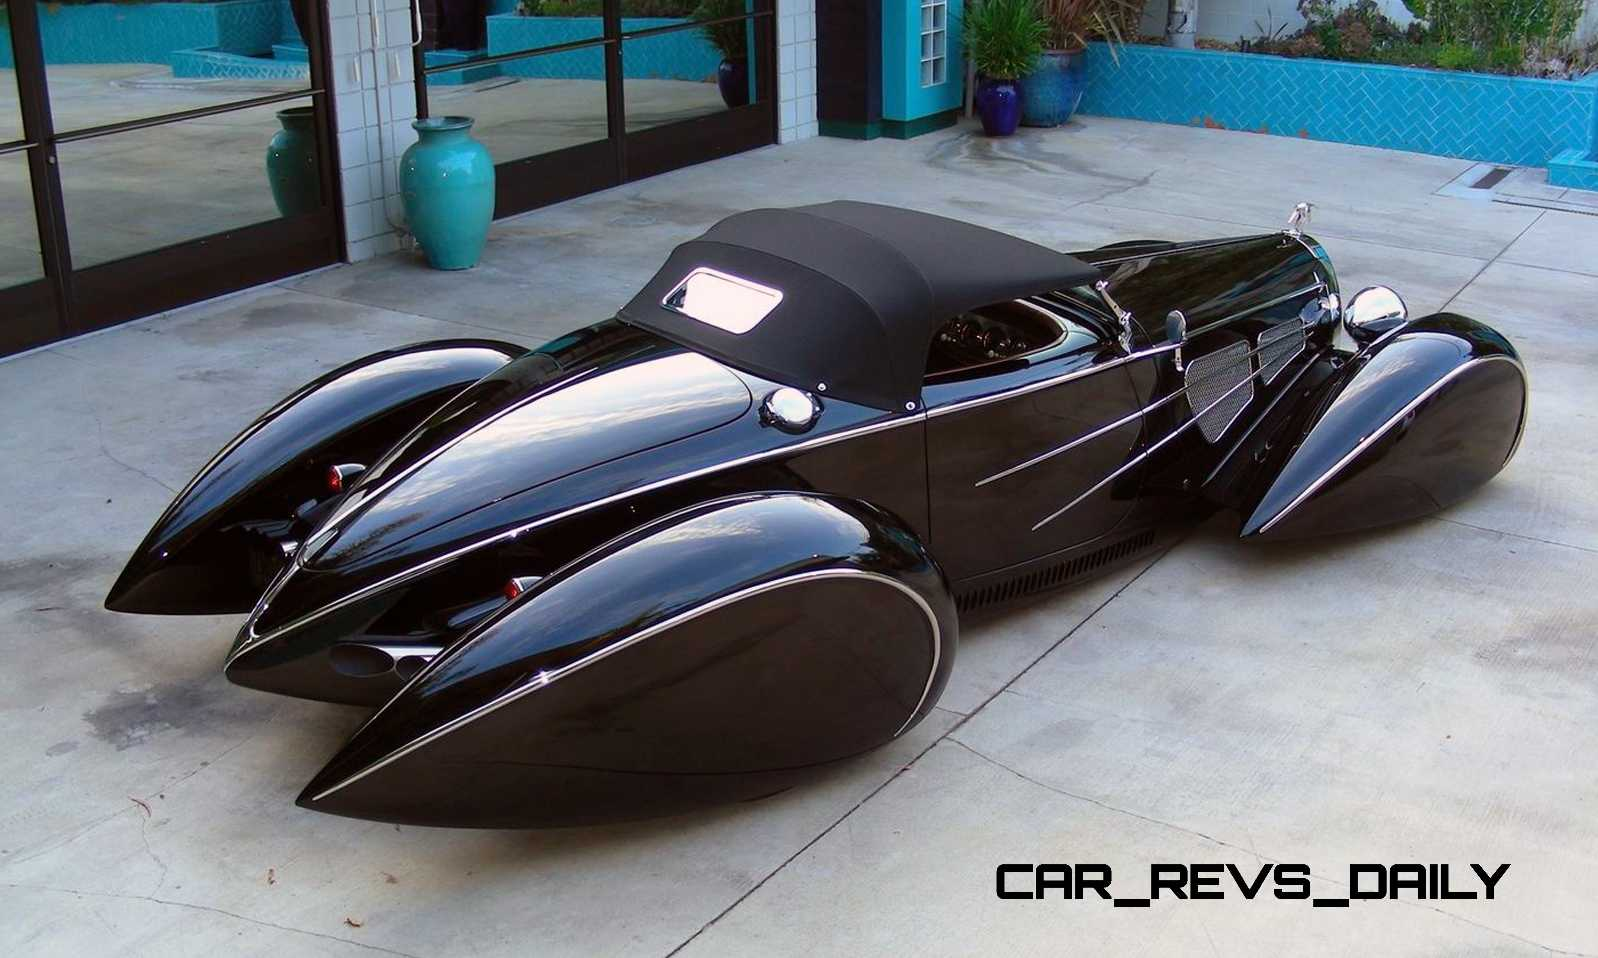 Atlantic Auto Sales >> 2015 DELAHAYE USA Bugnotti Reimagines Type 165 With New Styling and Modern Mechanicals